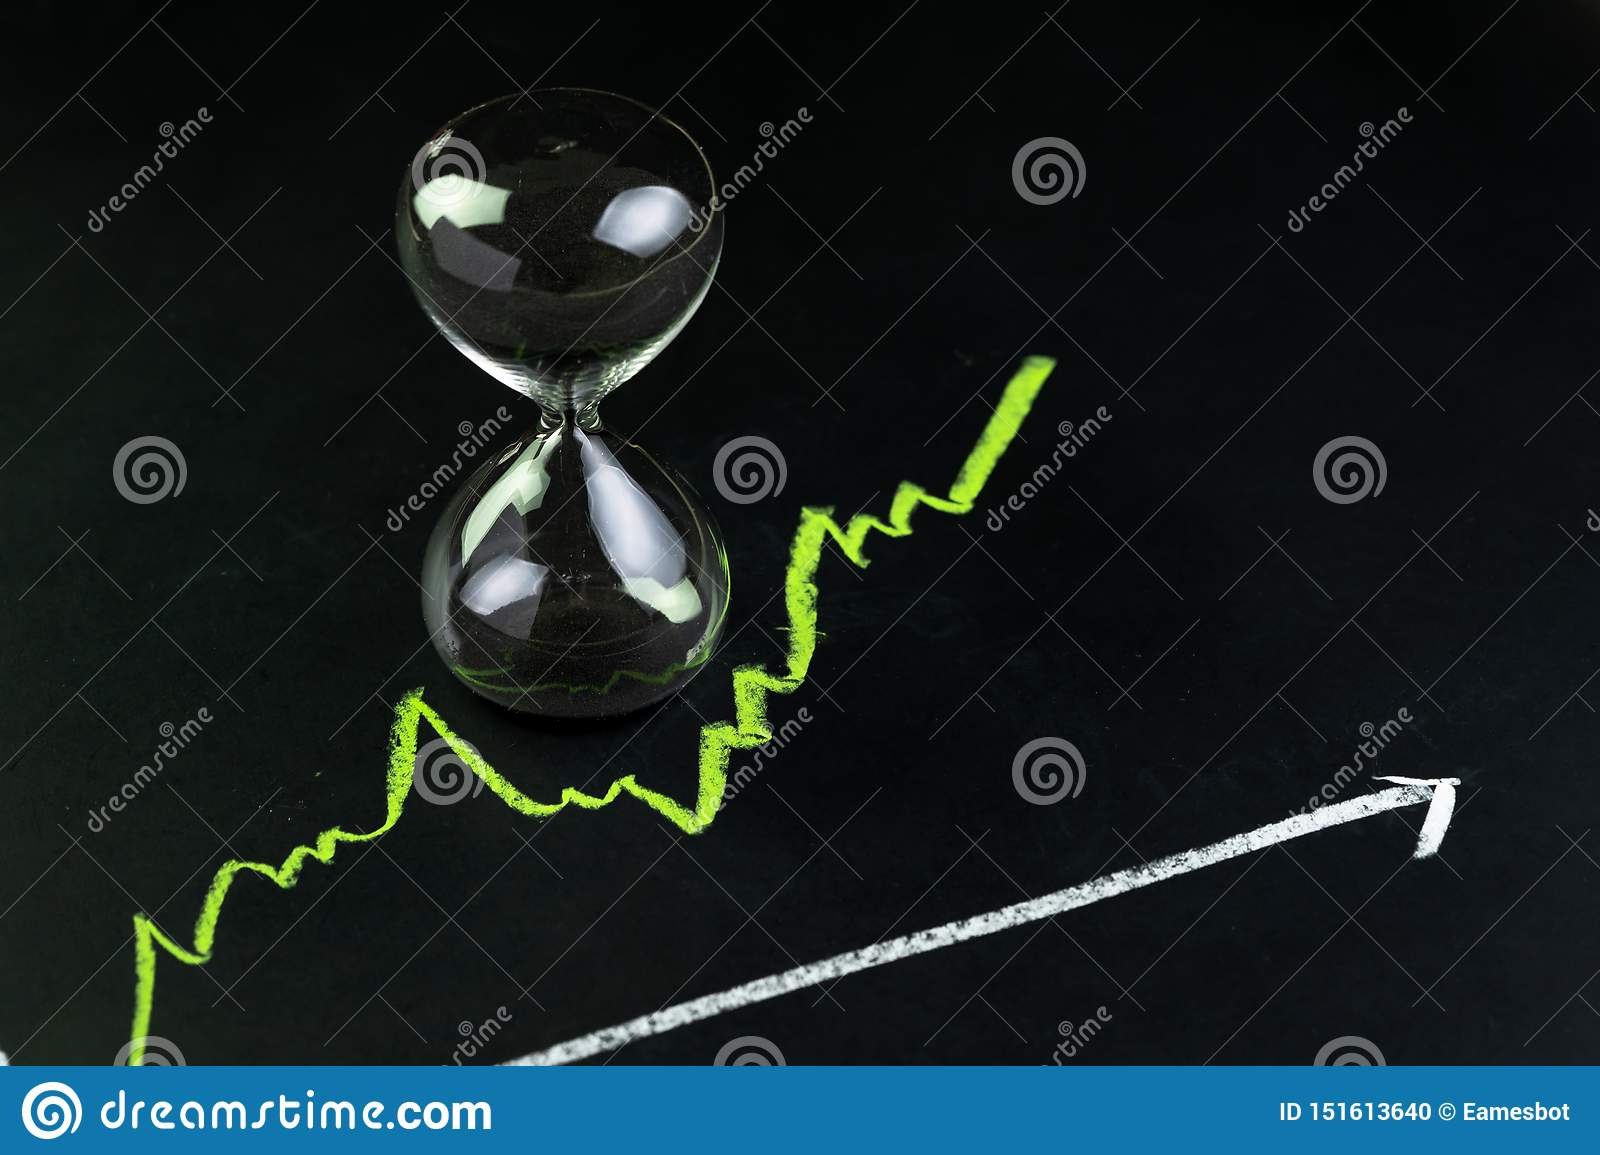 Time for invest or long term investment concept, hourglass or sandglass with black sand inside on stock market green line rising